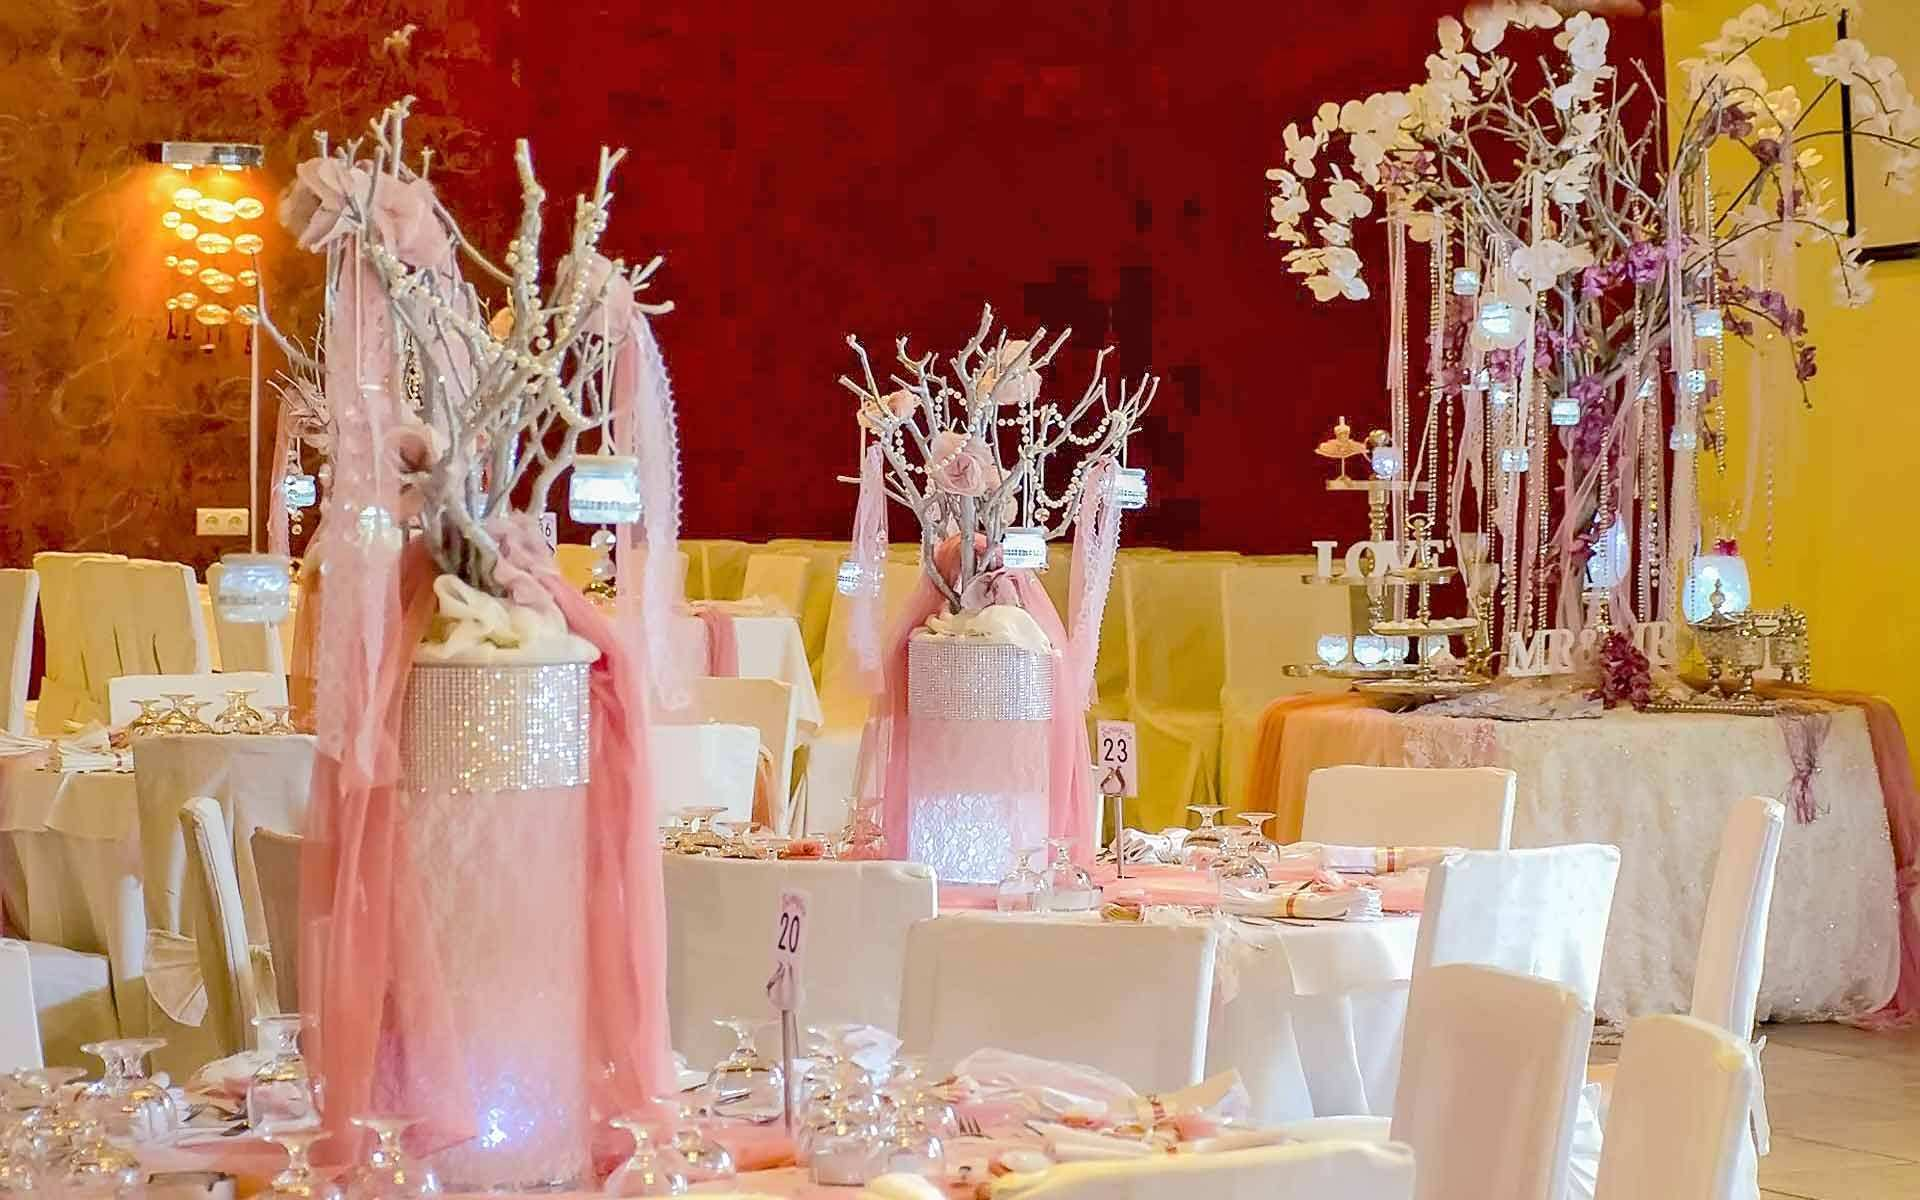 Luxurious-Baptism-Christening-Reception-Venue-With-Orchids-Pearls-And-Pink-Fabrics